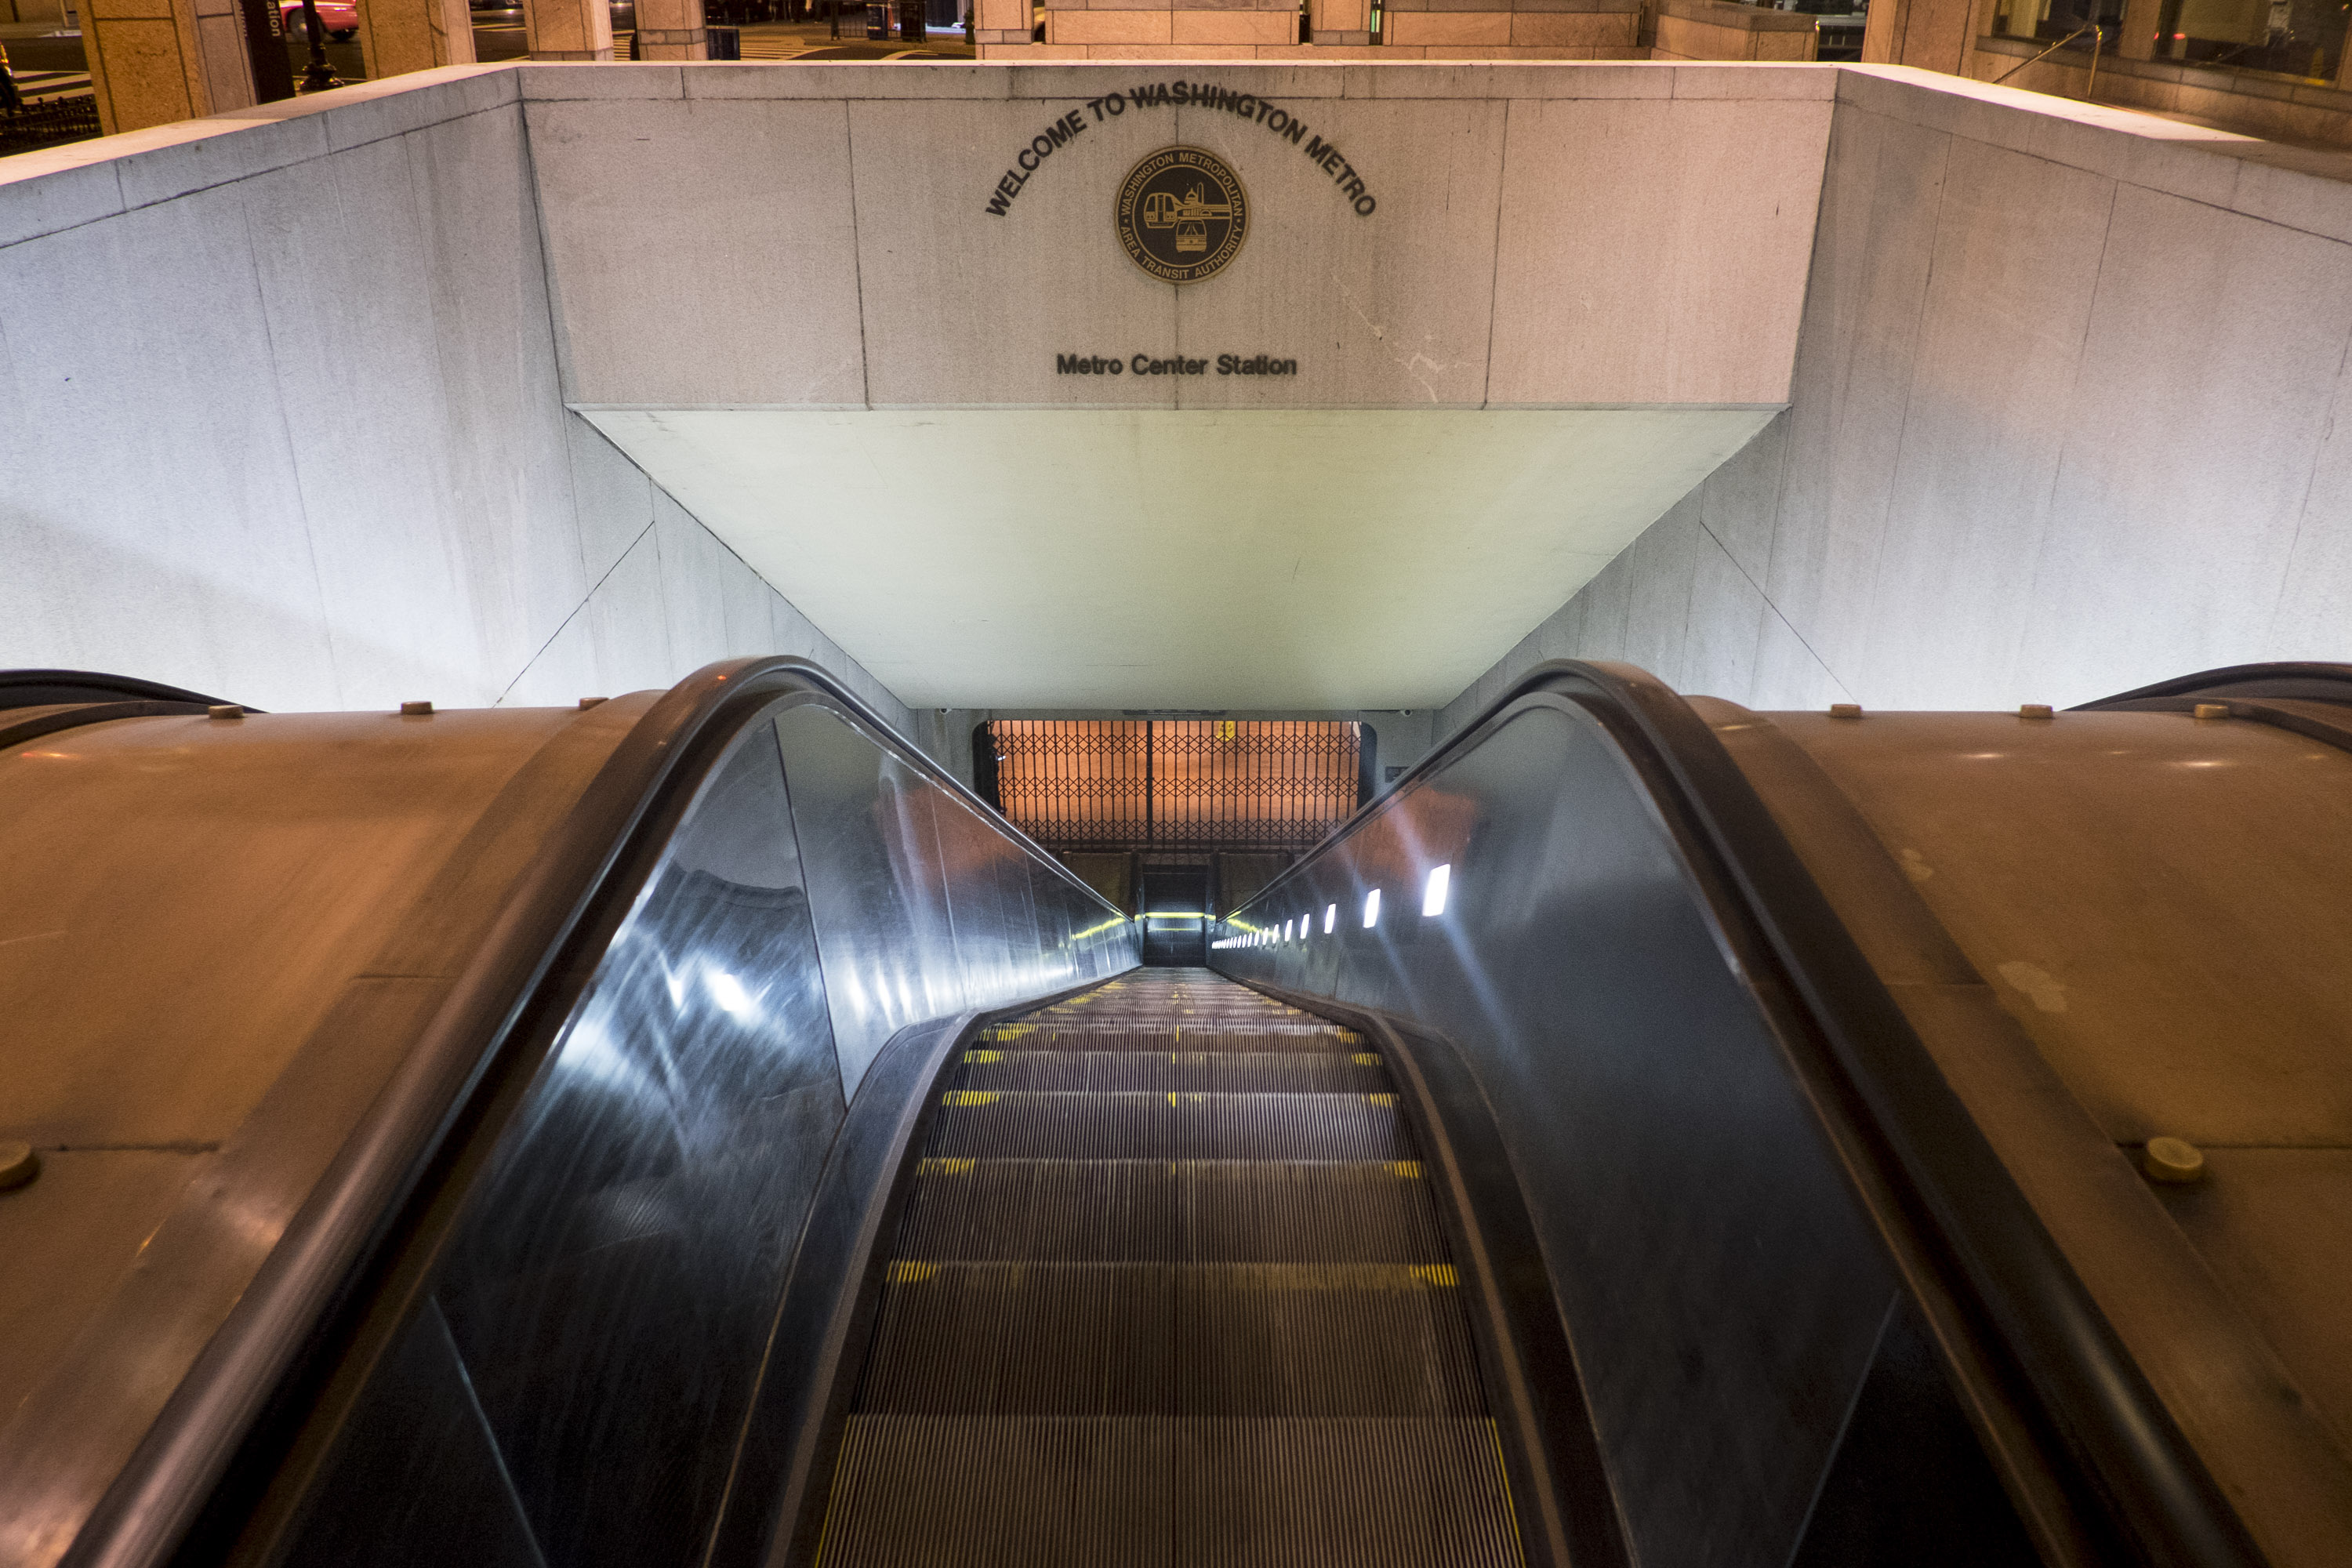 Metro set to vote on expanding food and drink sales inside stations